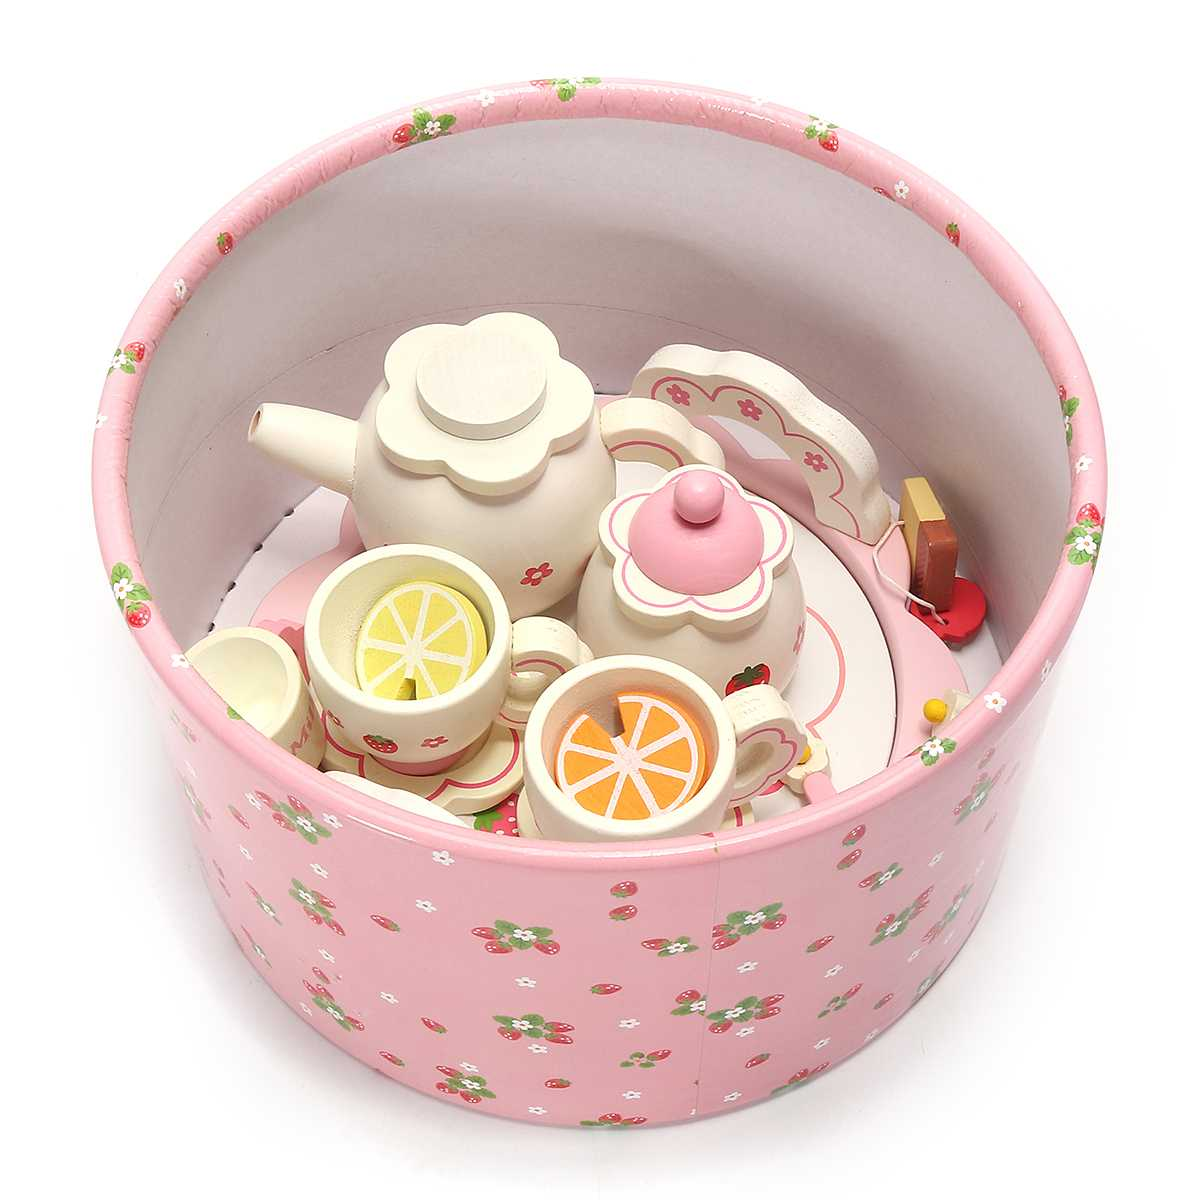 Children Role Pretend Play Wooden Kids Tea Set Educational Kitchen Toys Simulation Cups Teapot Tray Bowl Kids Girls Gifts Pink